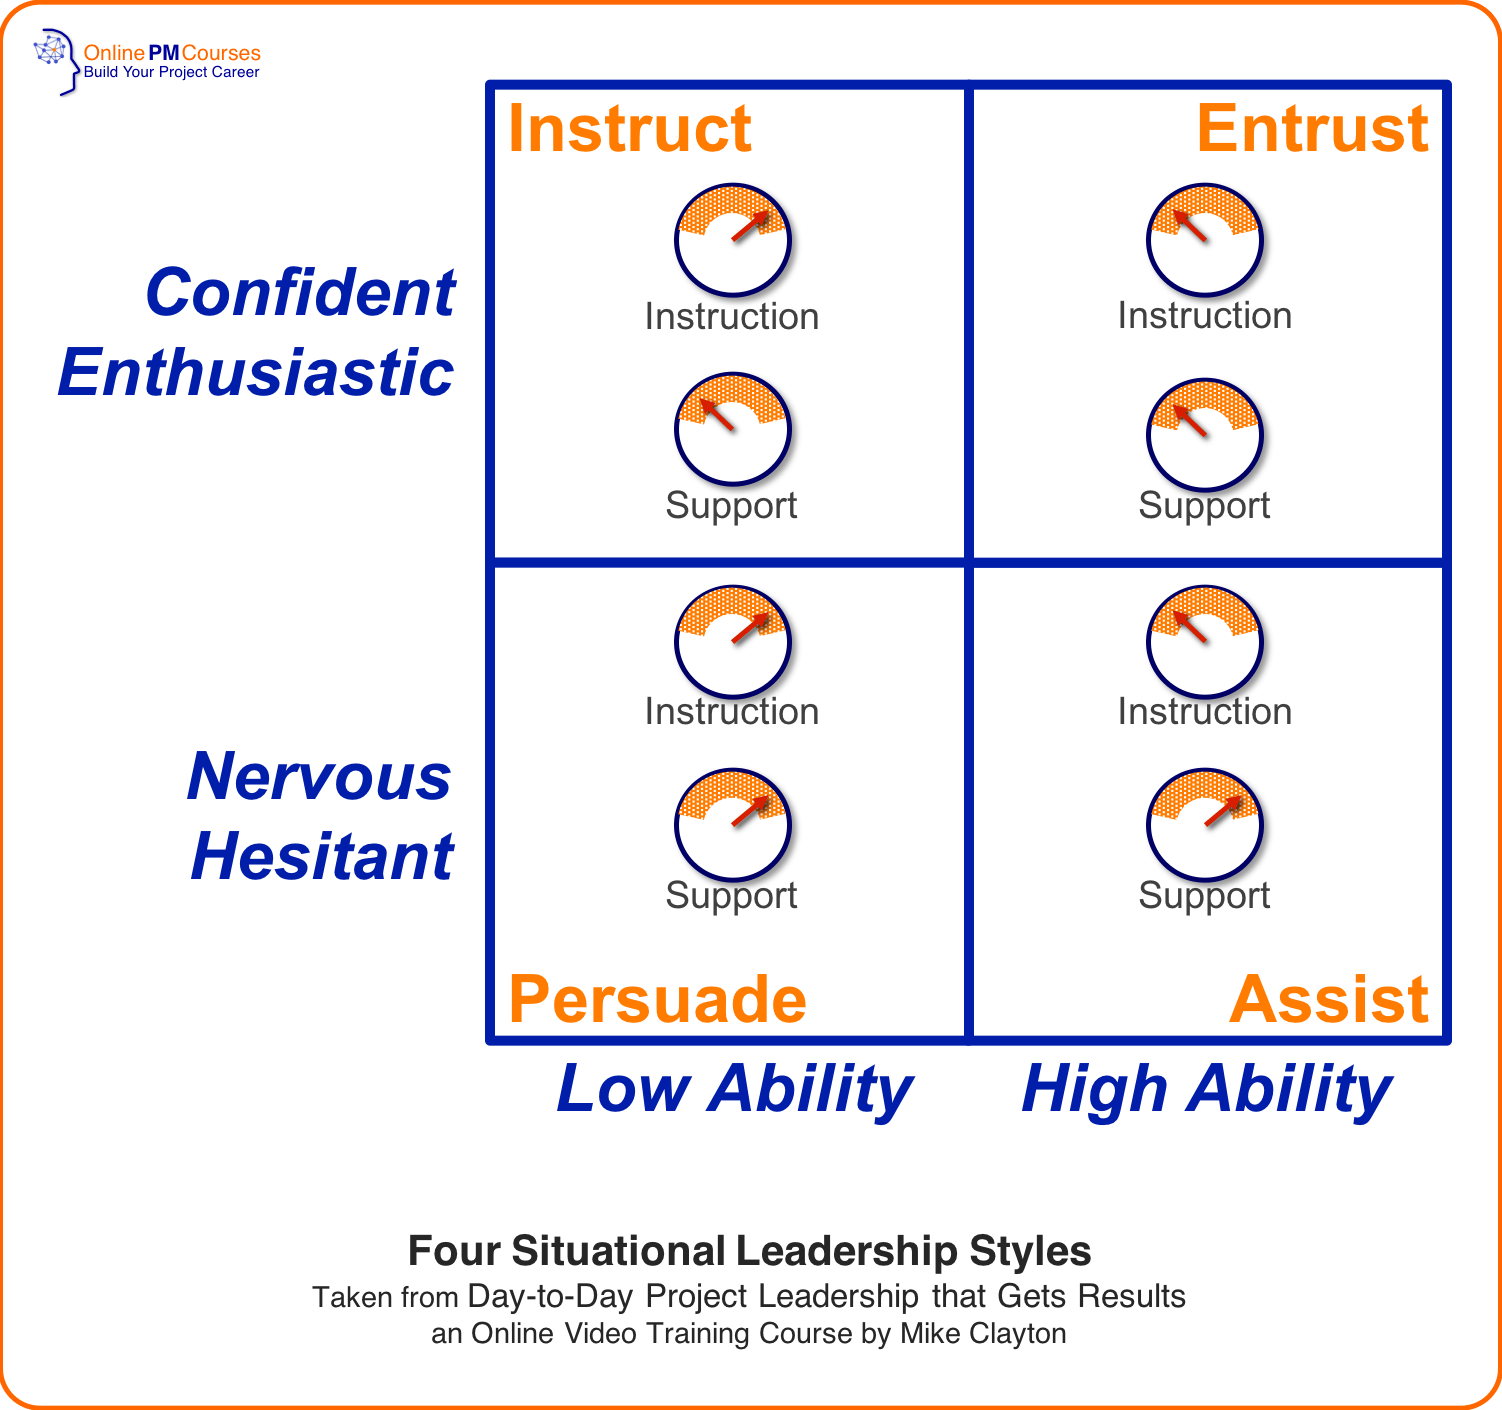 Four Situational Leadership Styles